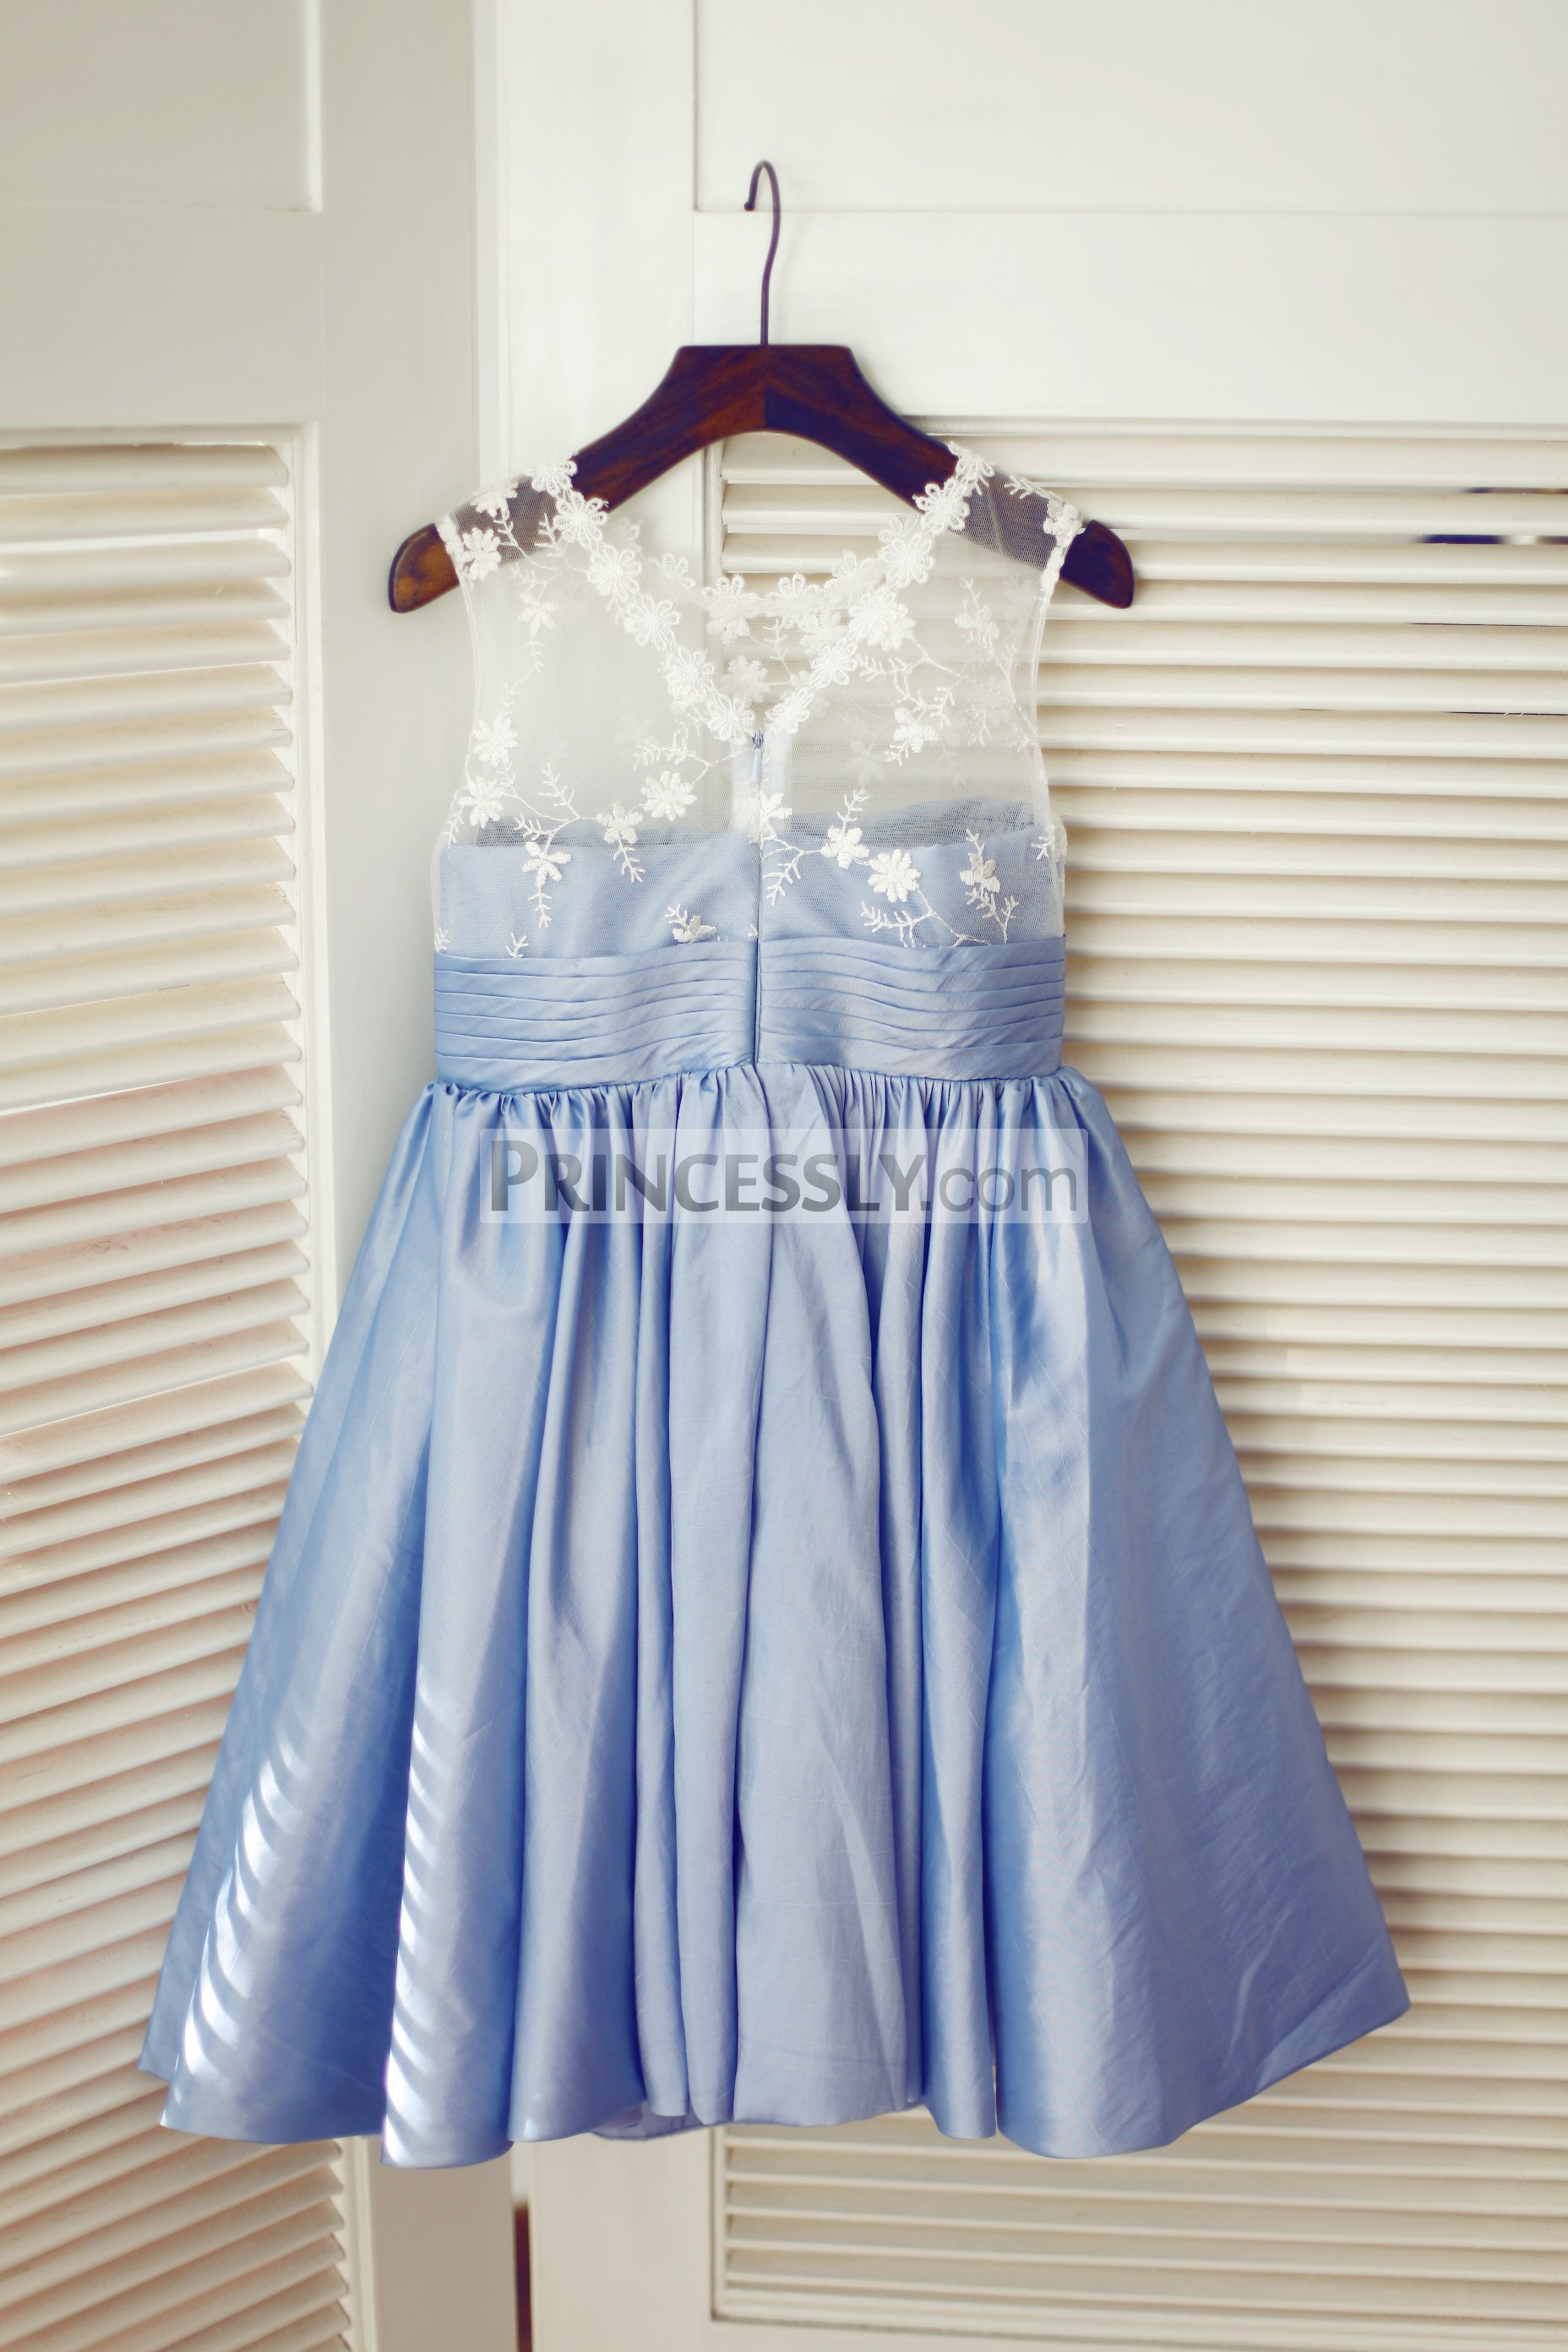 Ivory sheer lace blue taffeta wedding baby girl dress